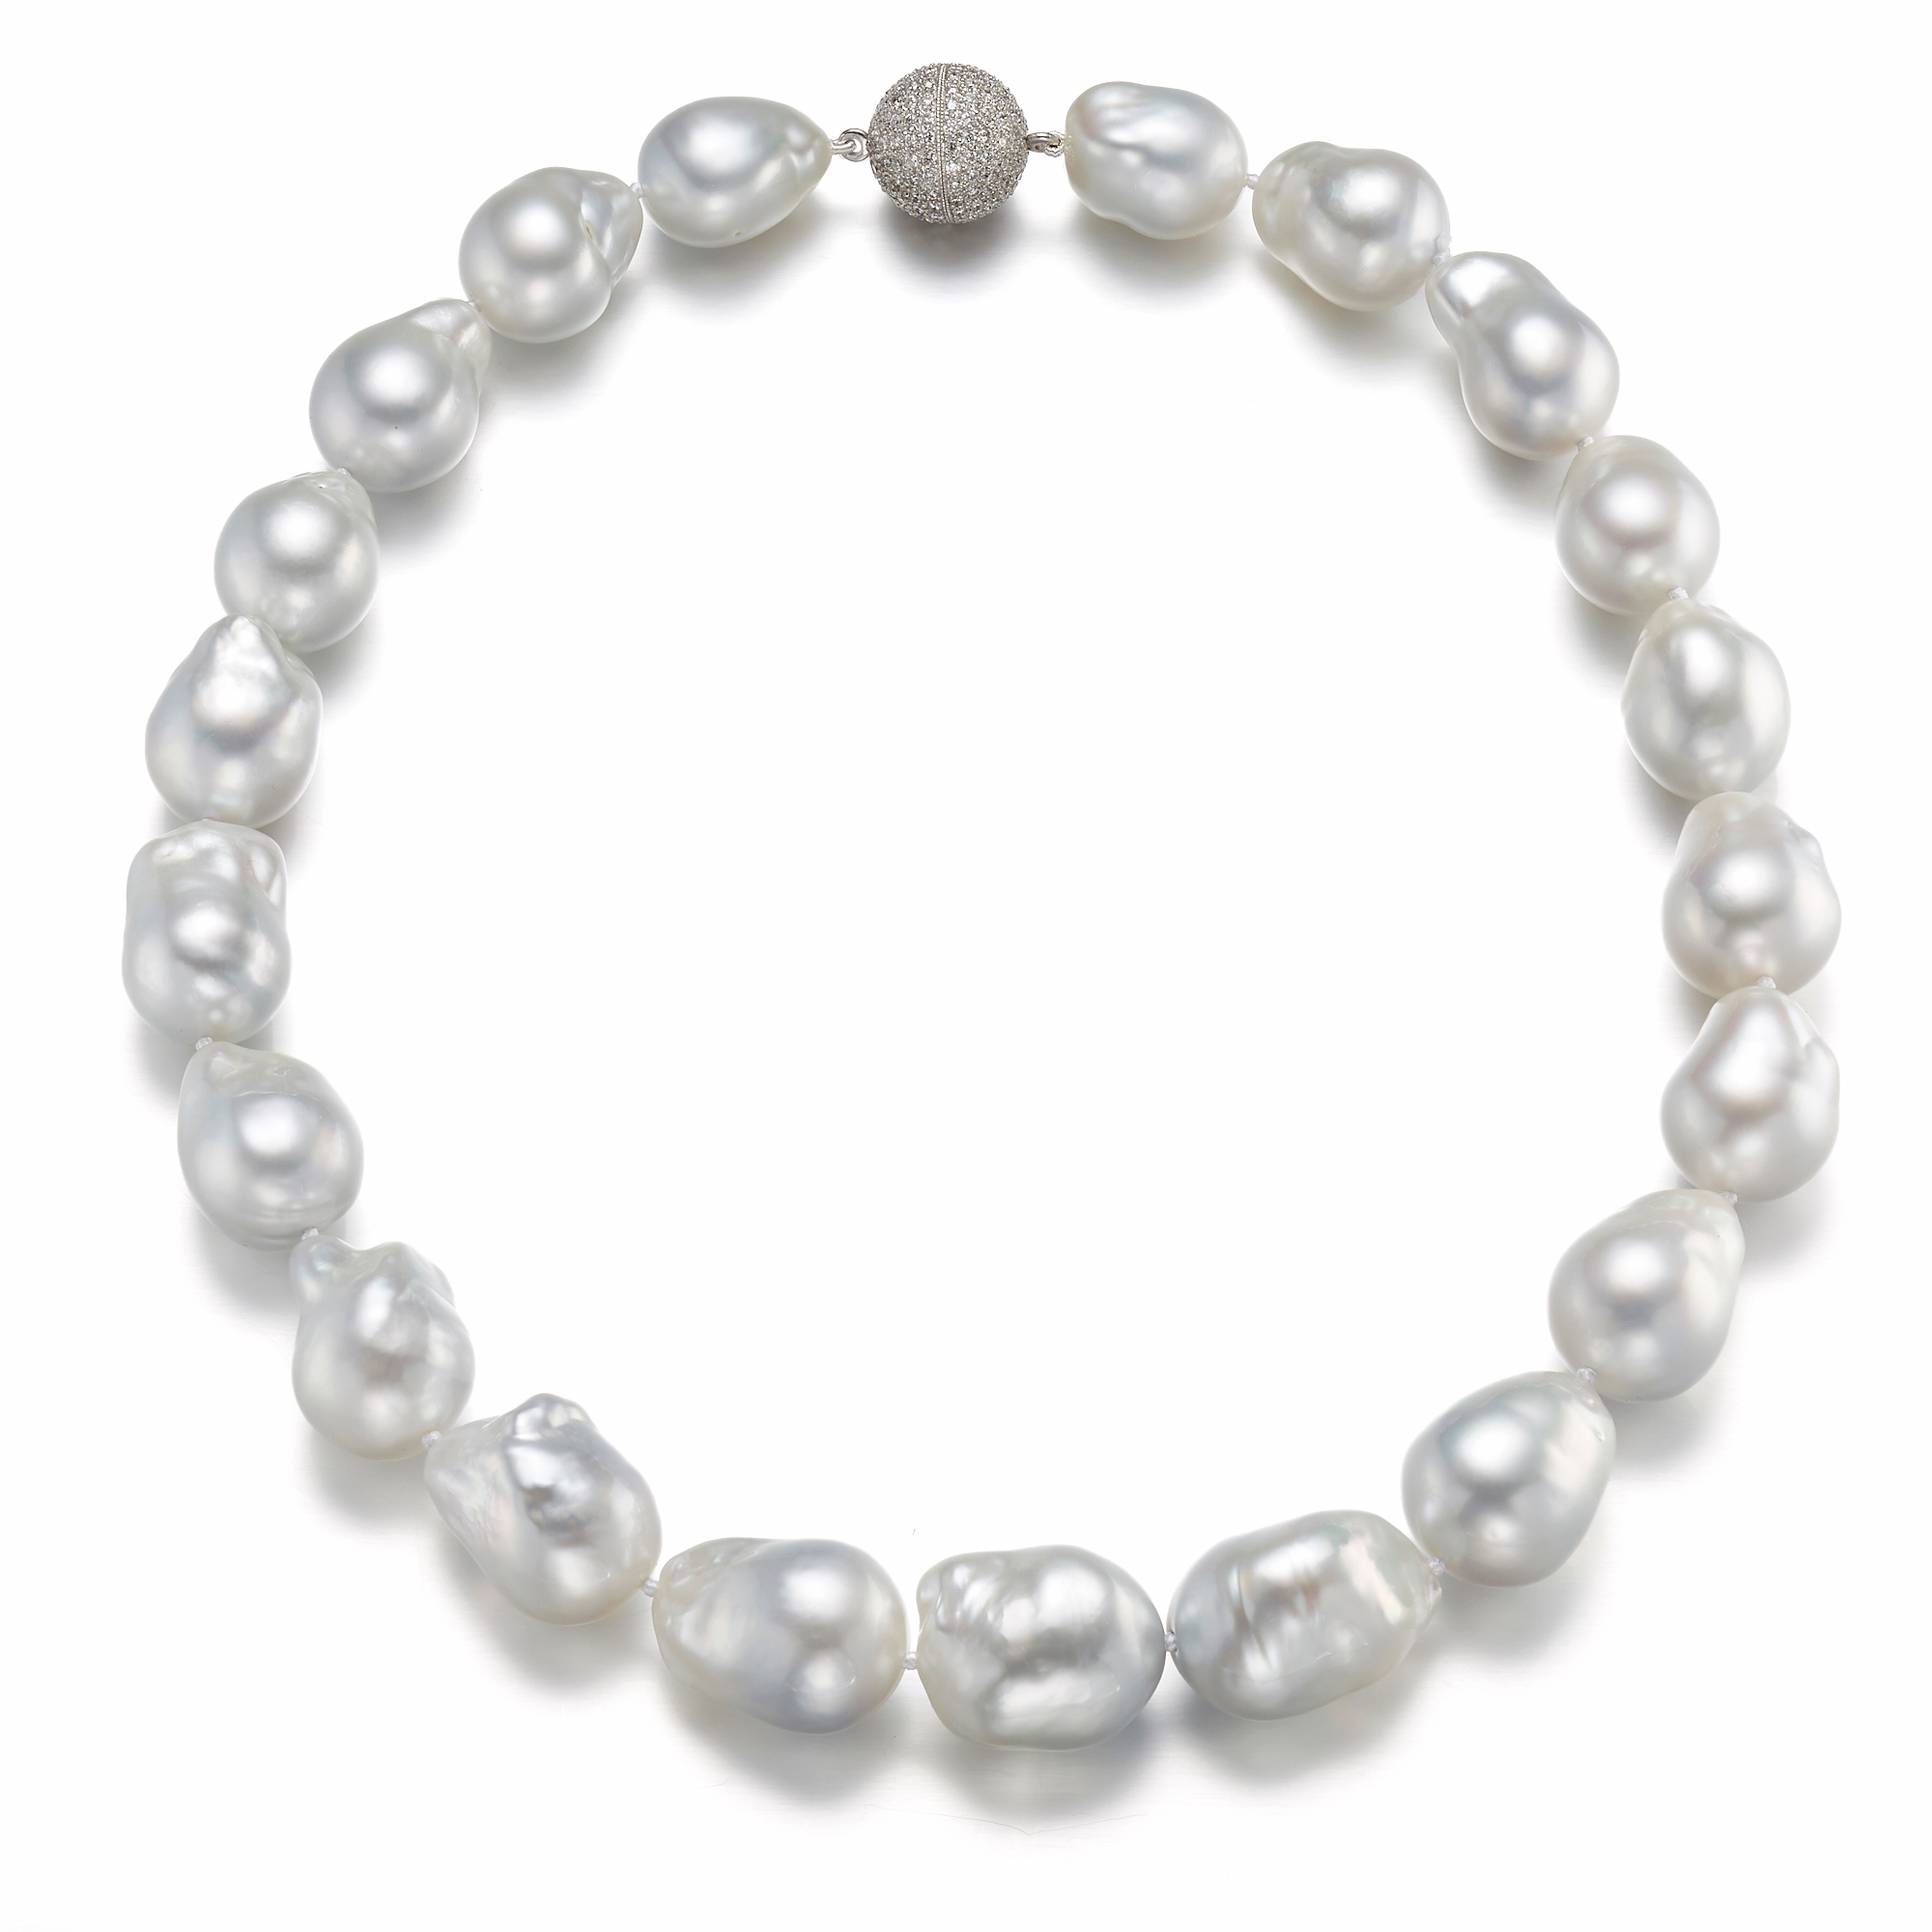 Gump's Baroque Silvery White South Sea Pearl & Diamond Necklace